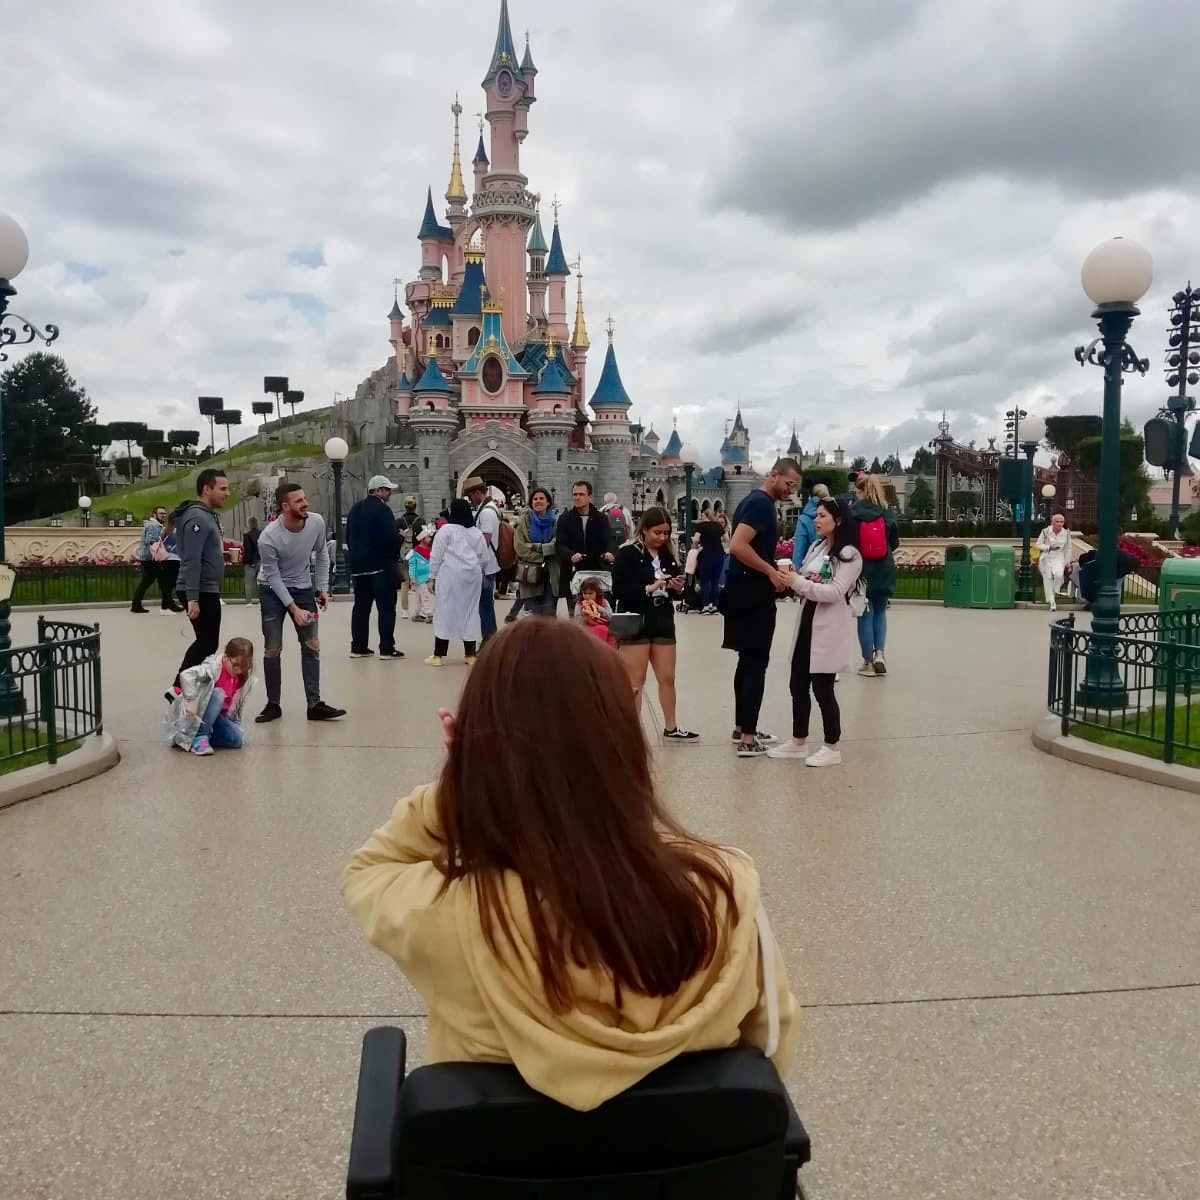 pippa in powerchair with back to camera, disneyland paris castle in background